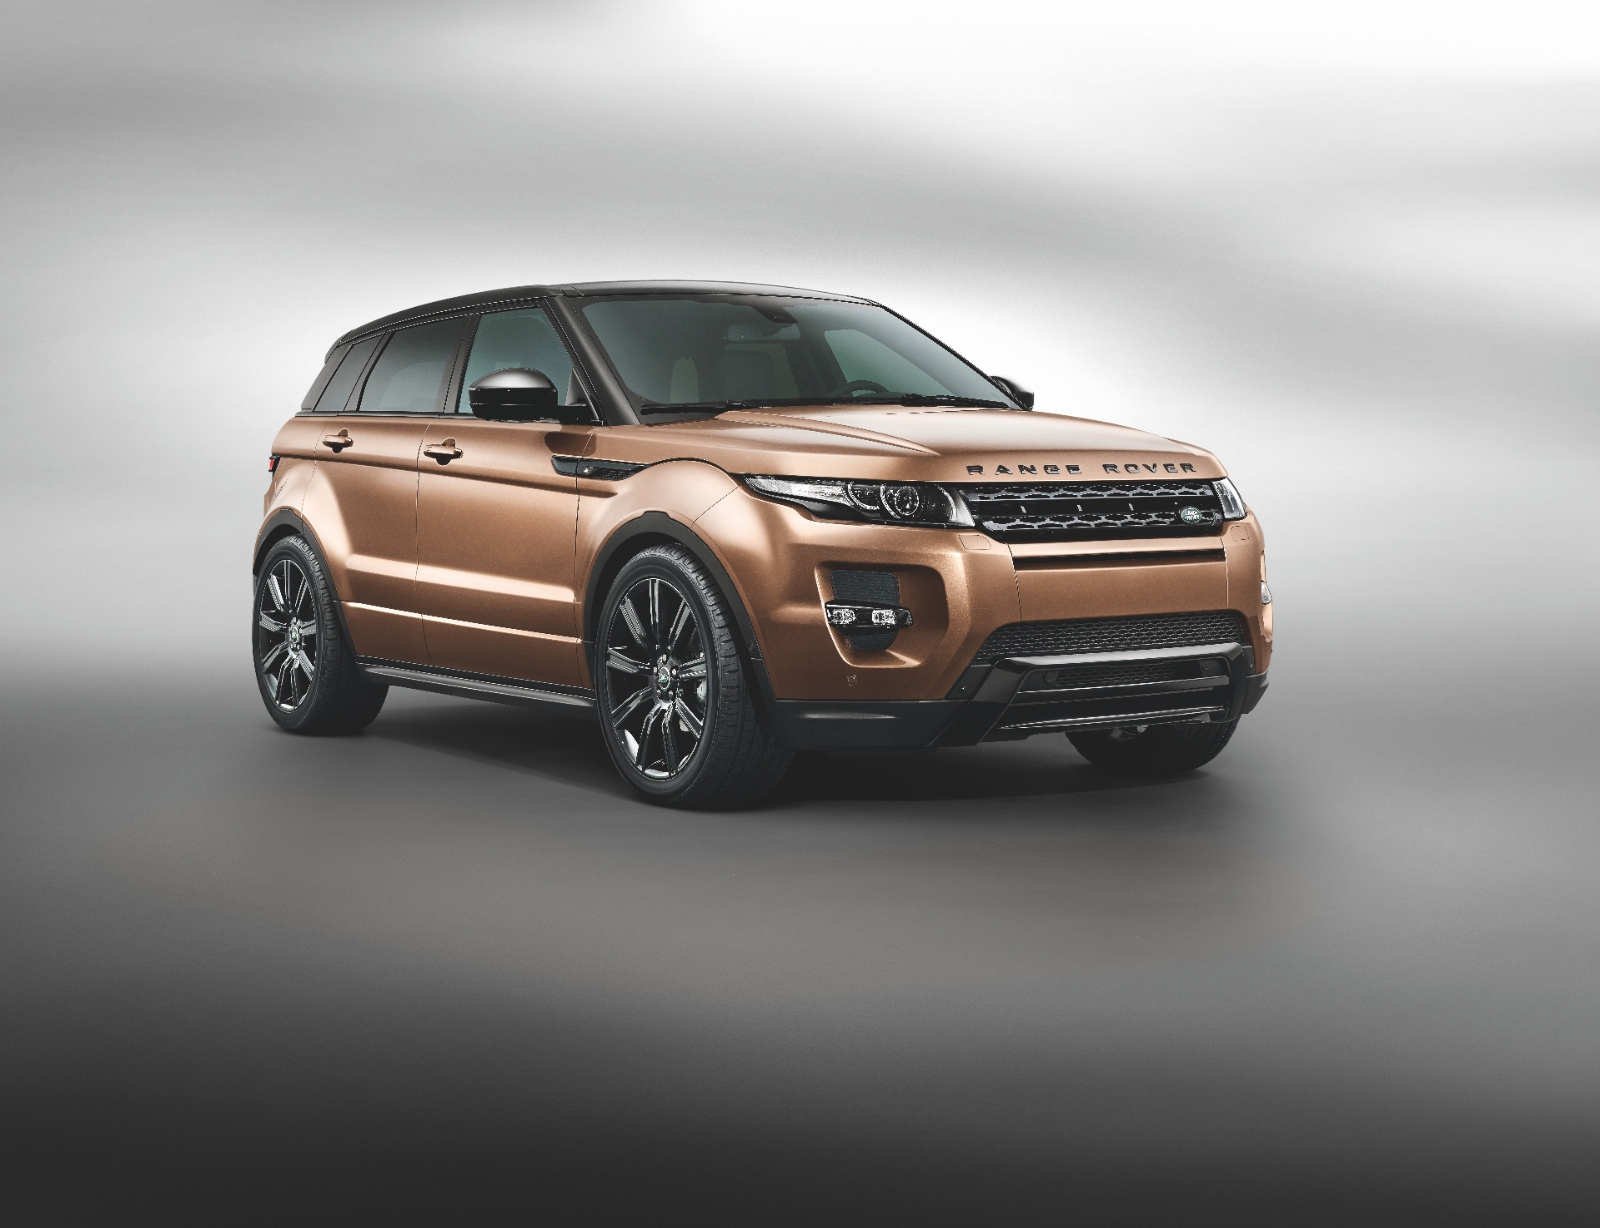 2014 range rover evoque is 11 more efficient thanks to 9. Black Bedroom Furniture Sets. Home Design Ideas